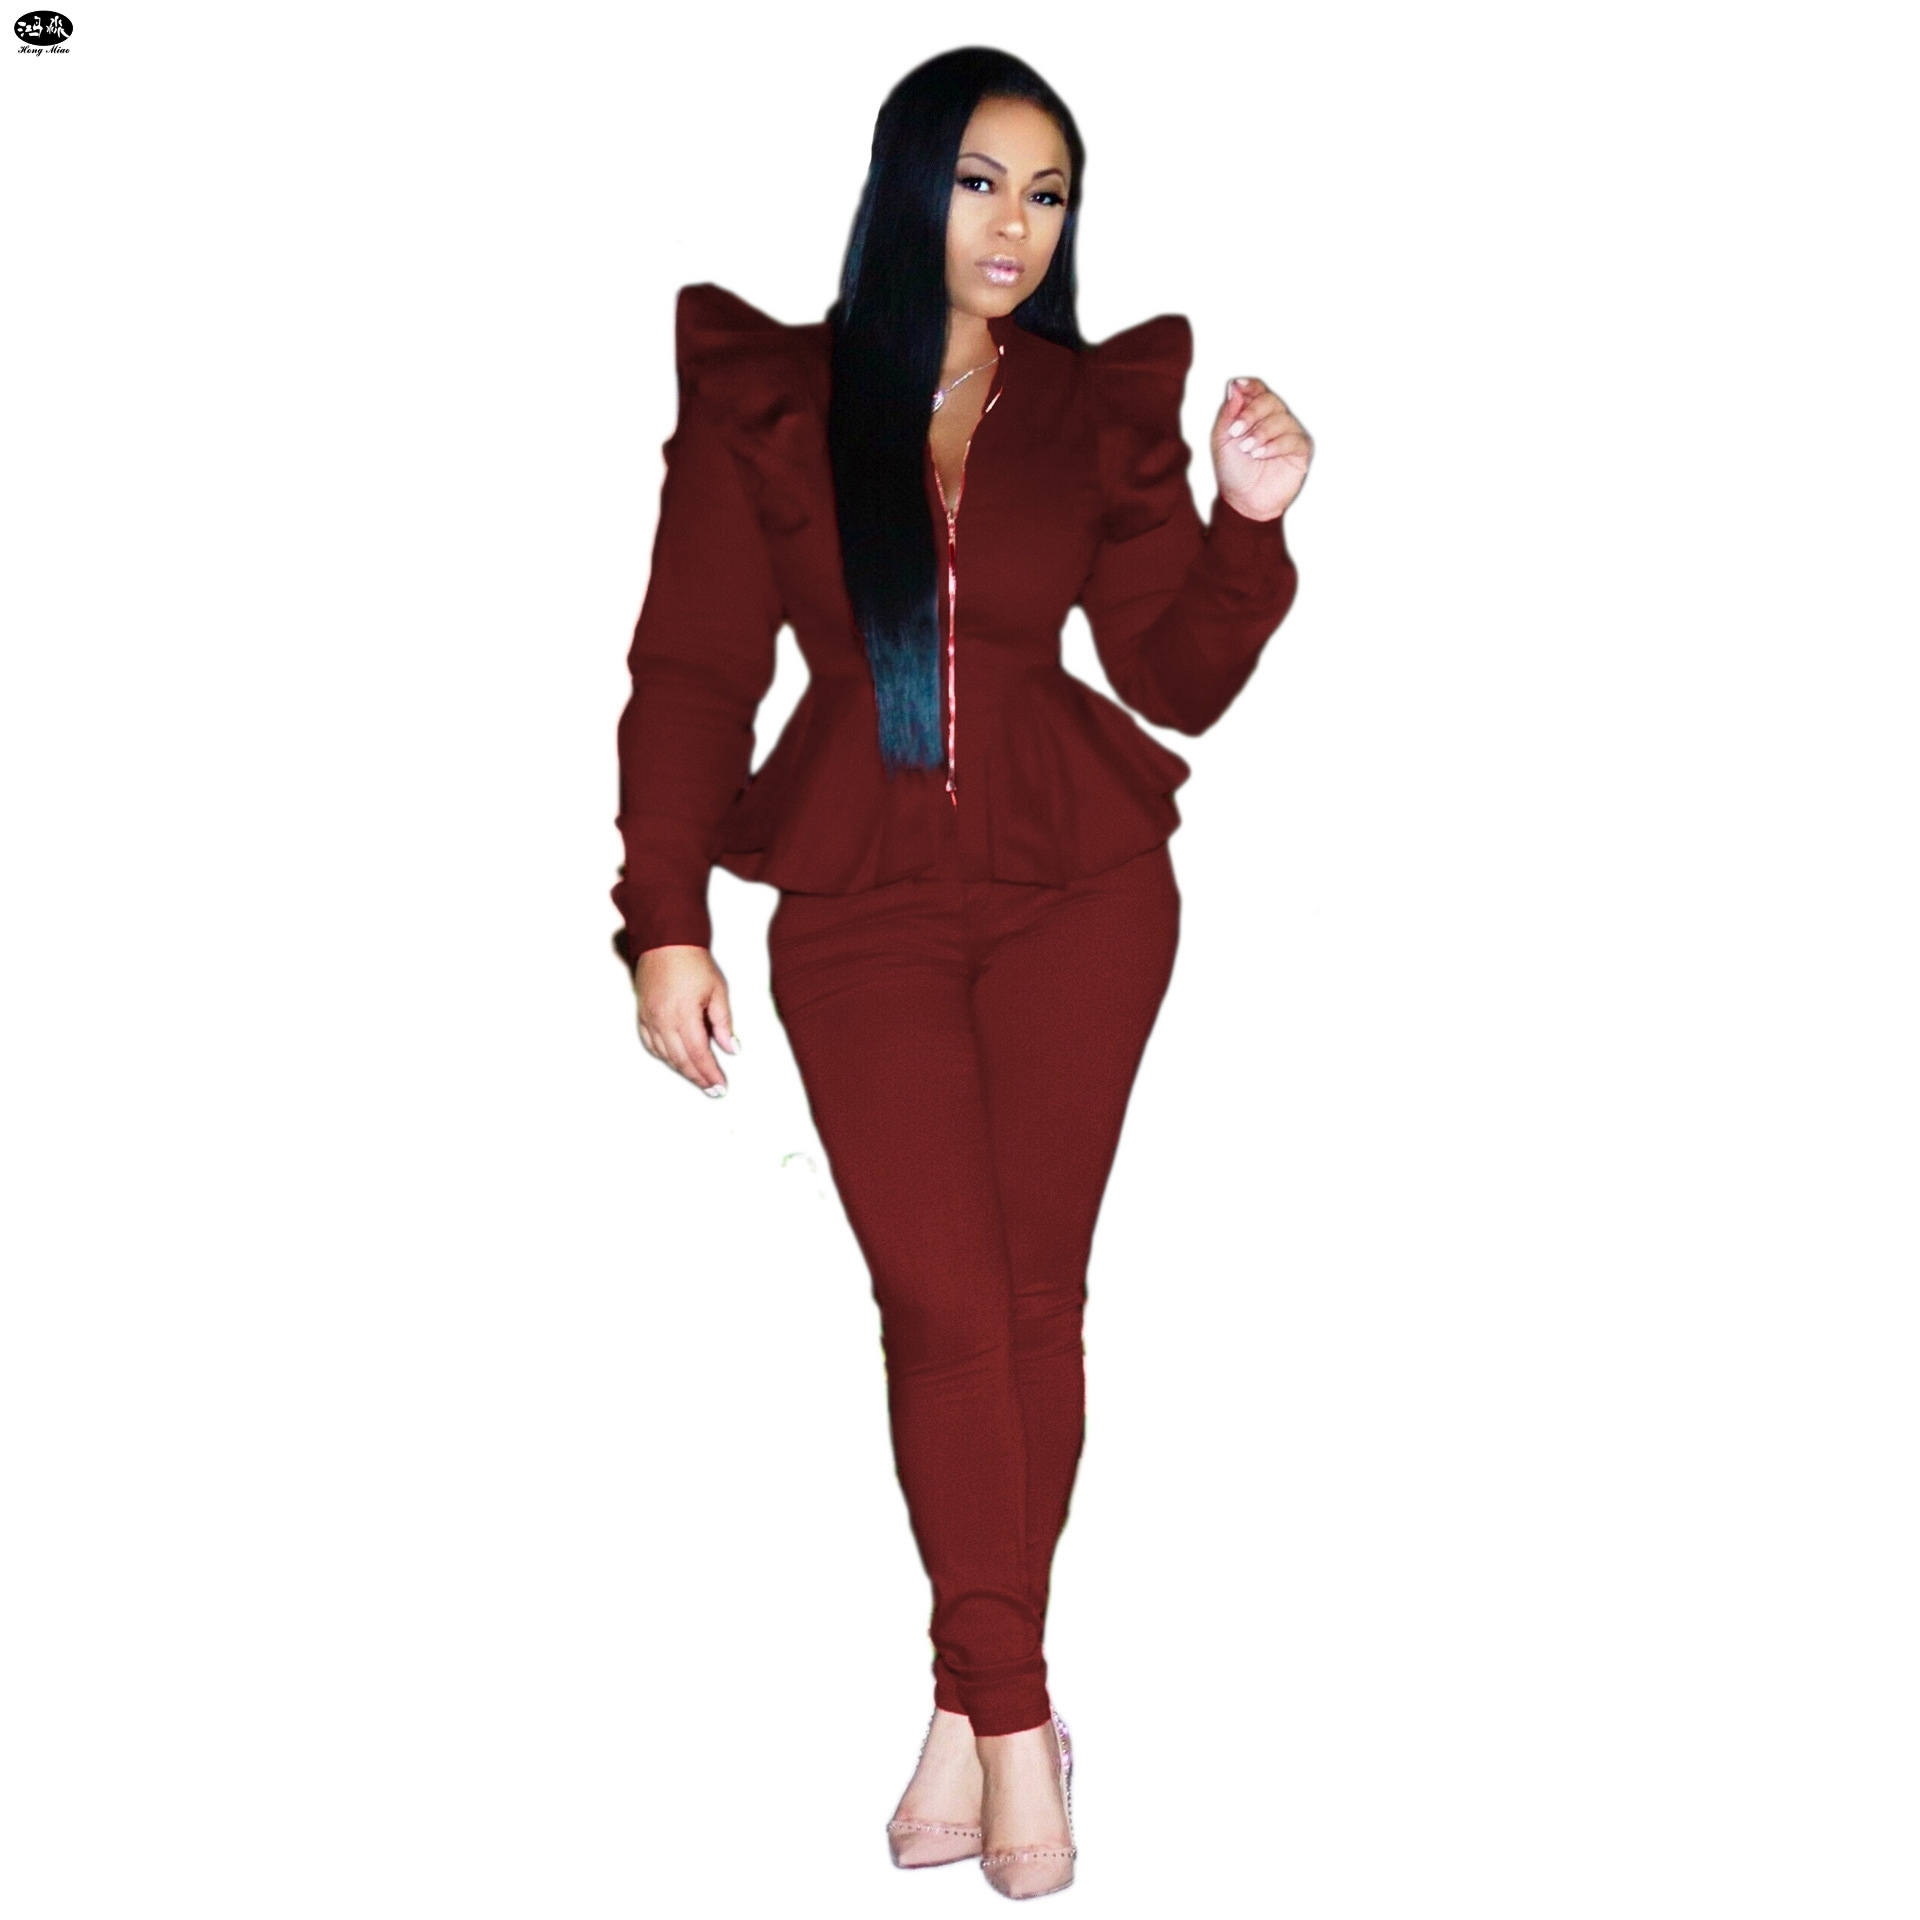 HongMiao 2018 New Fashion Autumn women top and pants shoulder pads long sleeve outfits casual zipper 2 pcs set solid tracksuit